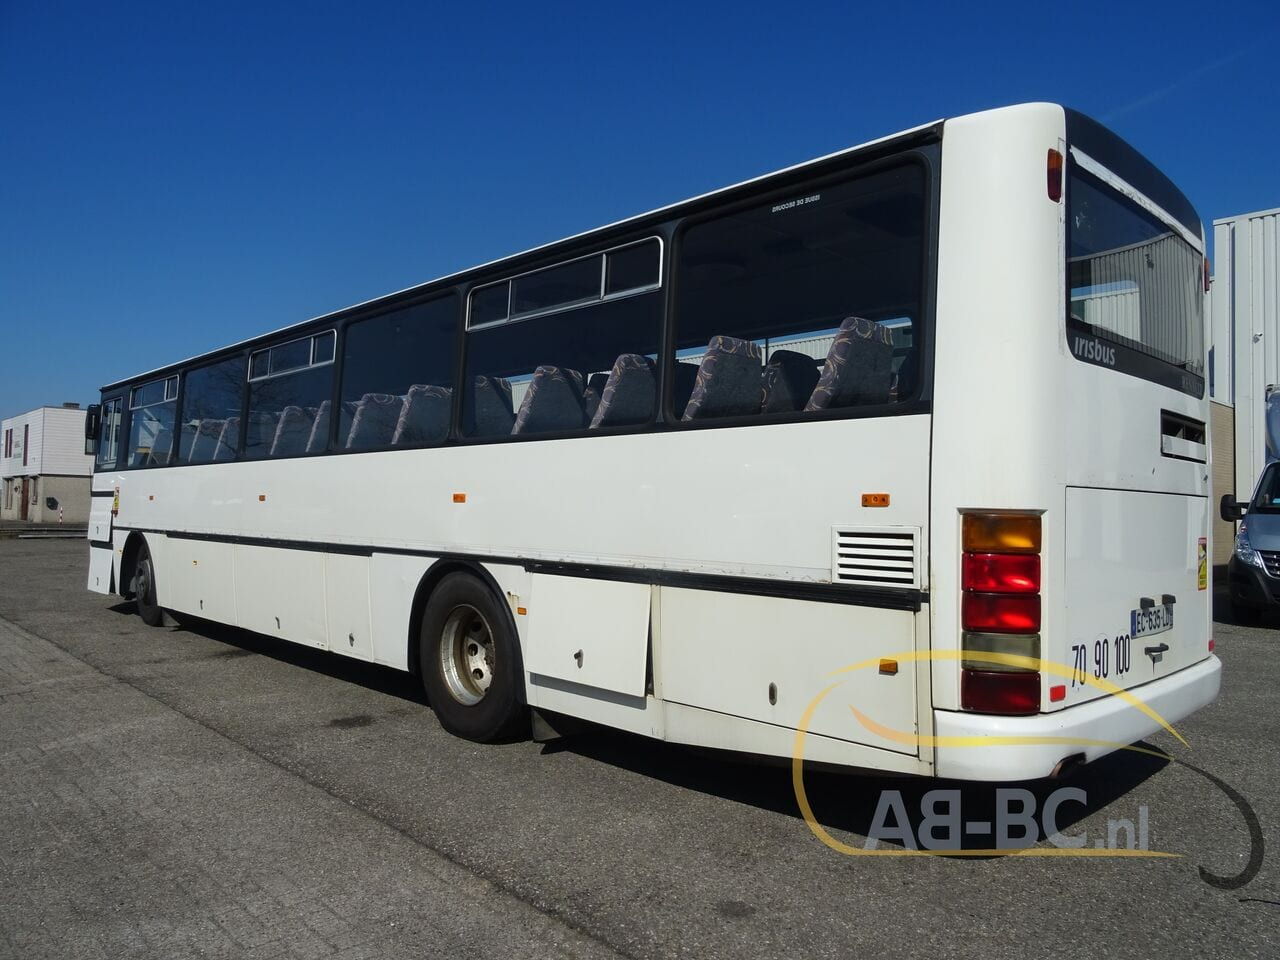 interurban-busIVECO-Irisbus-Recreo-59-Seats---1619430695568707929_big_b064ec9334b4390247577255e33d11e8--21042612454255740900